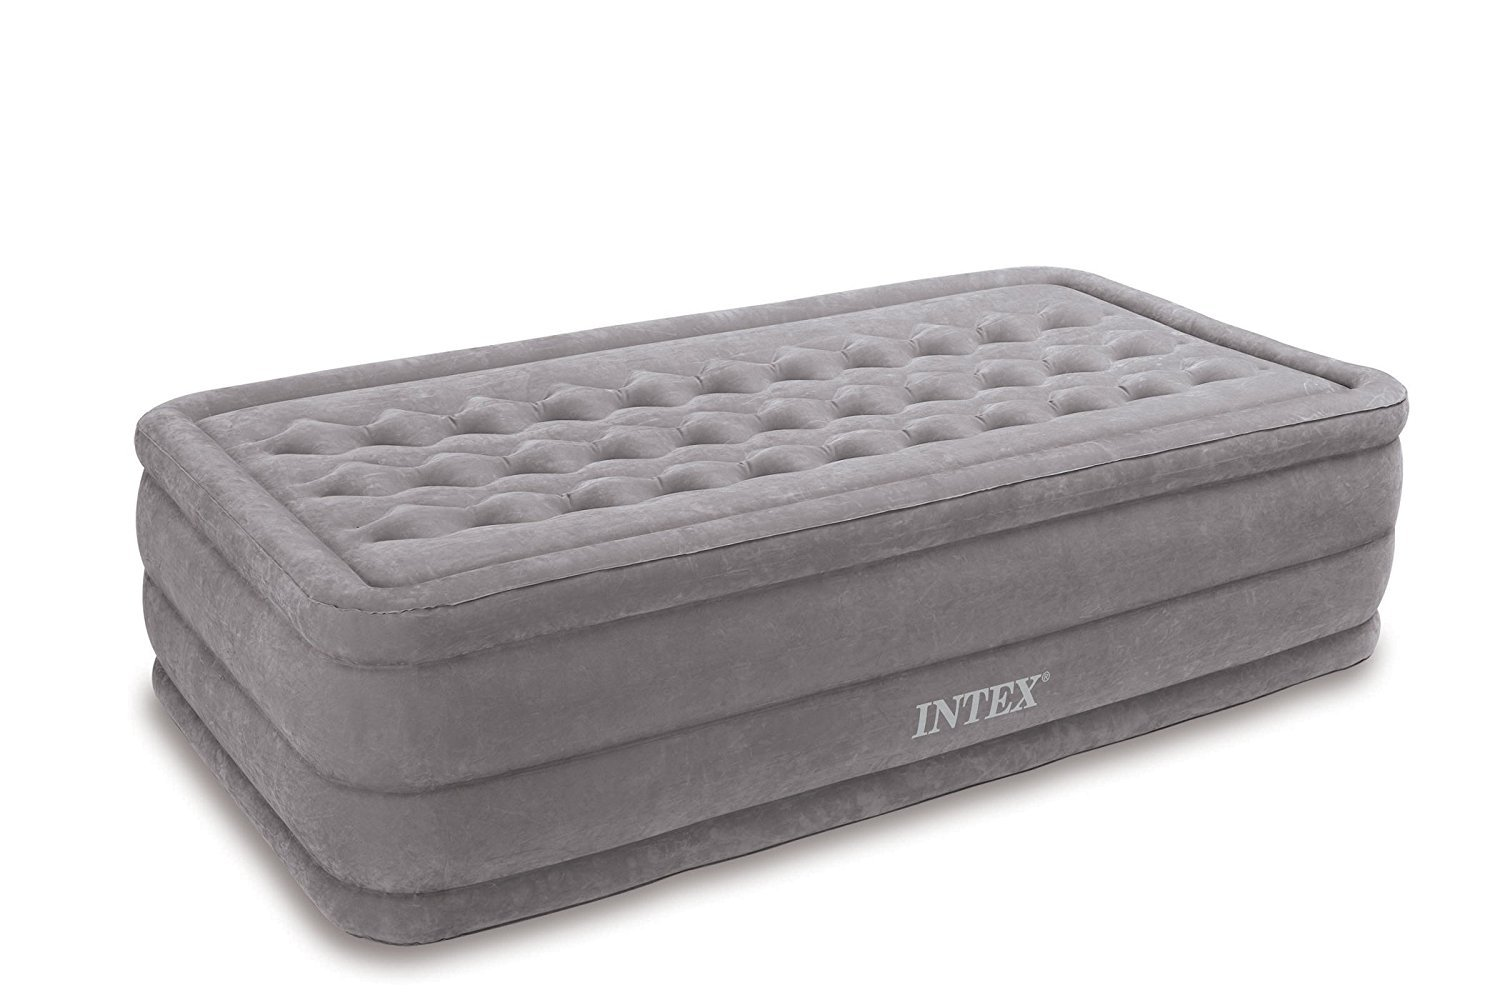 Intex Ultra Plush Airbed with Built-in Electric Pump, Twin, Bed Height 18''